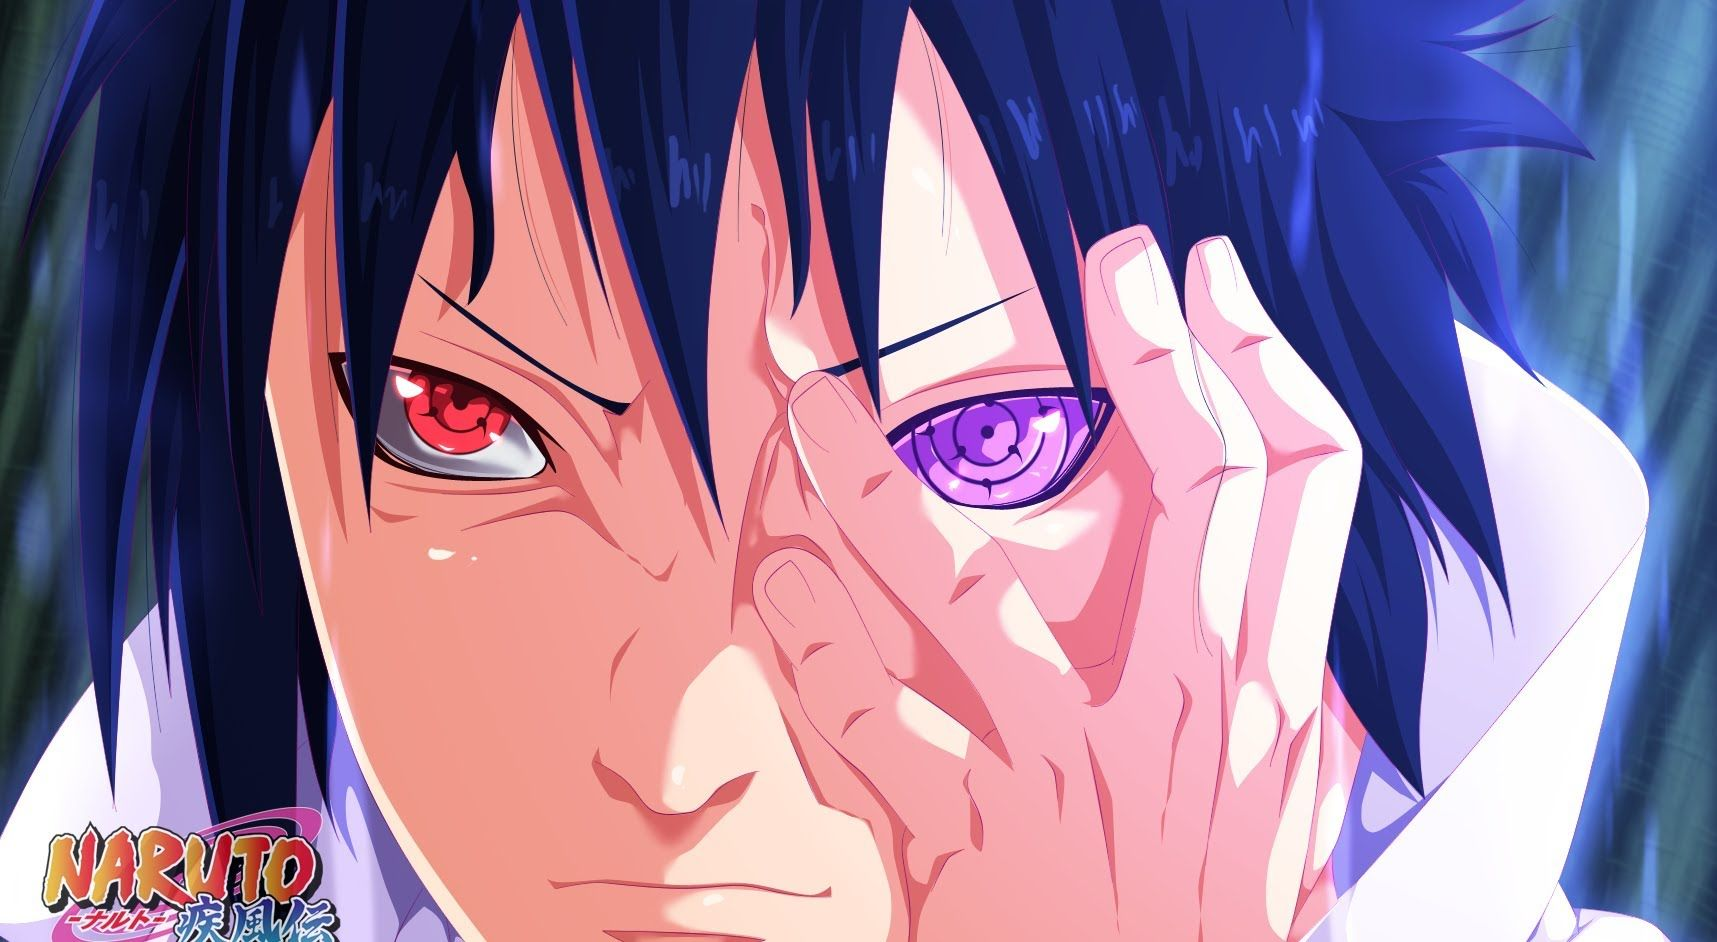 Sasuke rinnegan hd wallpaper wallpapers pinterest hd - Rinnegan wallpaper hd ...